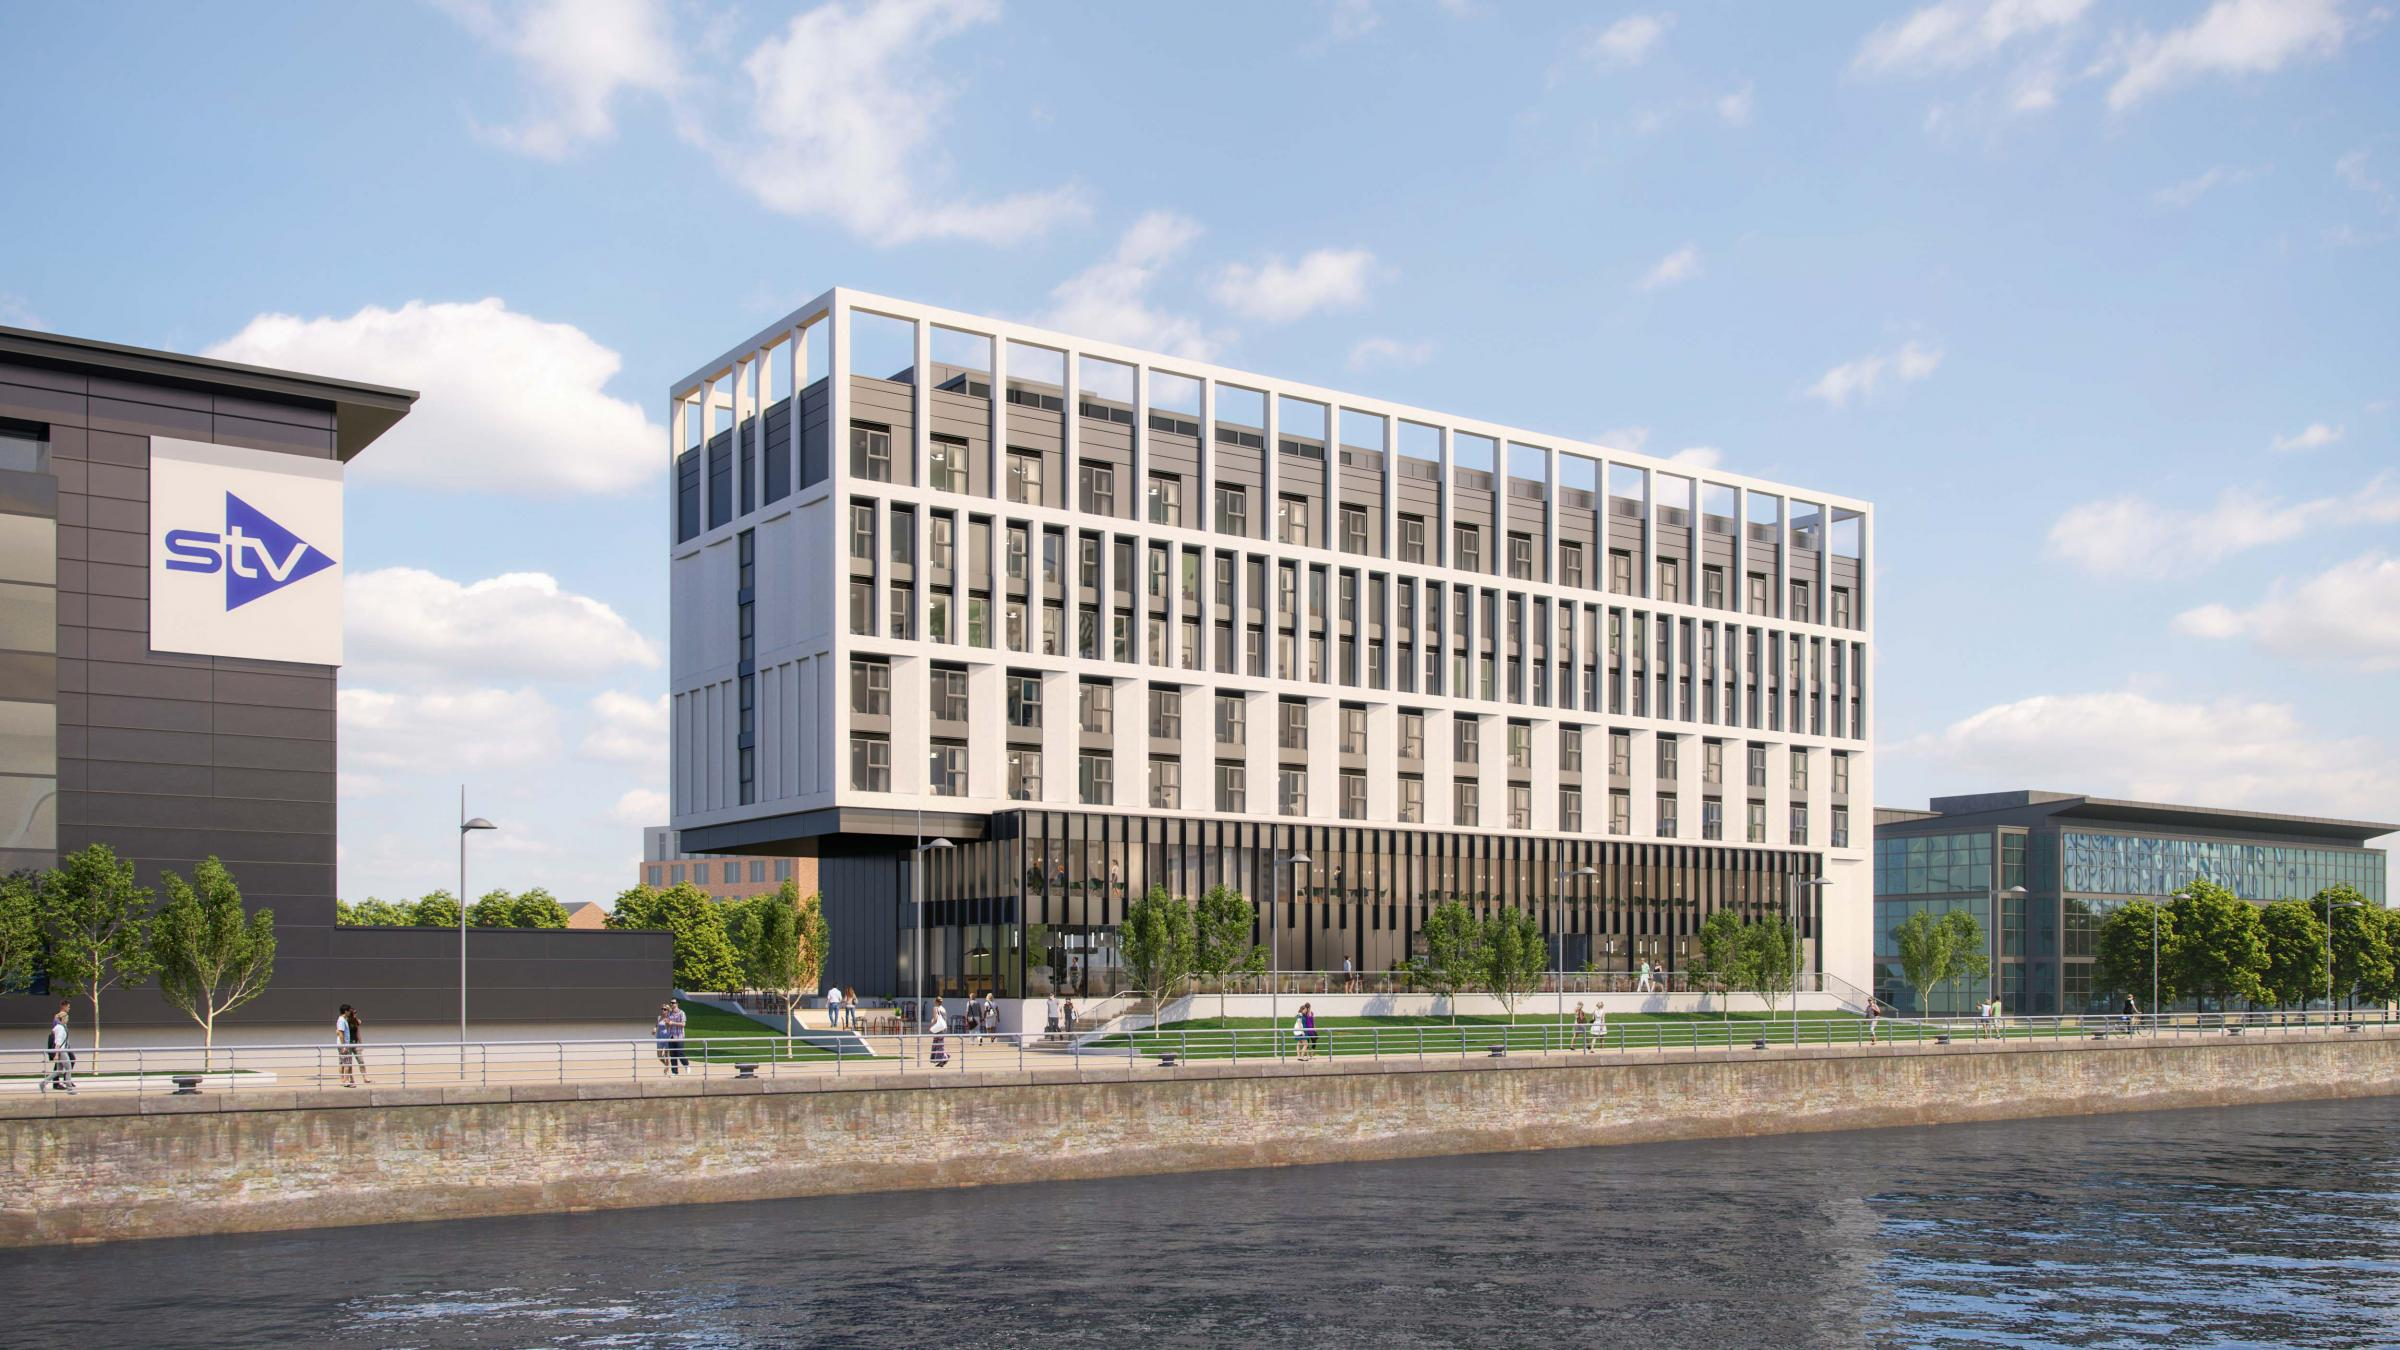 Holiday Inn reveal £18m hotel plans on River Clyde at Pacific Quay